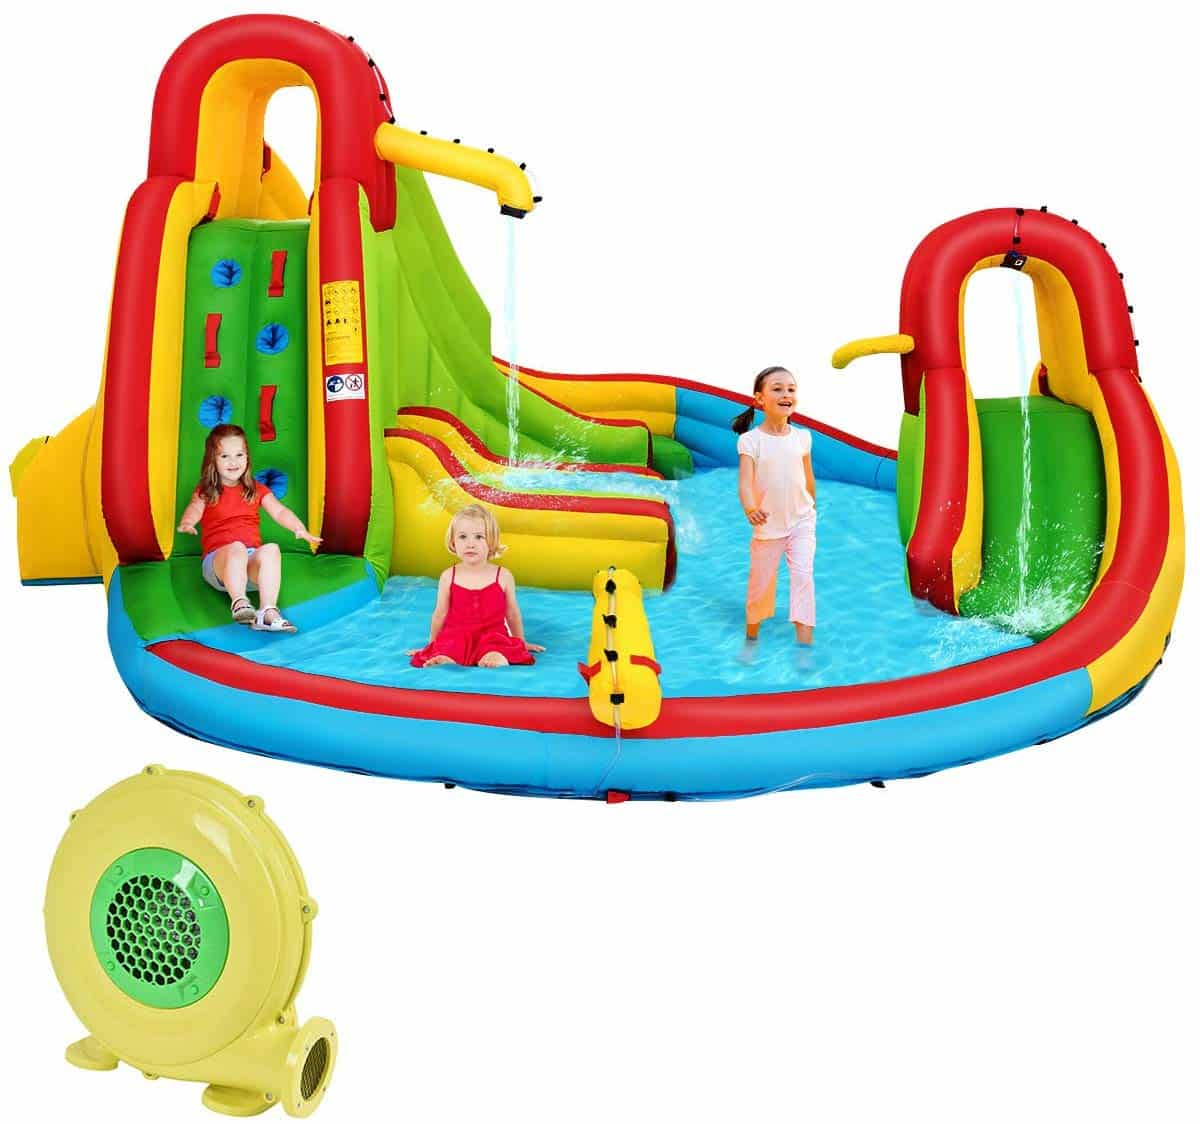 Costzon 7-in-1 Bounce House